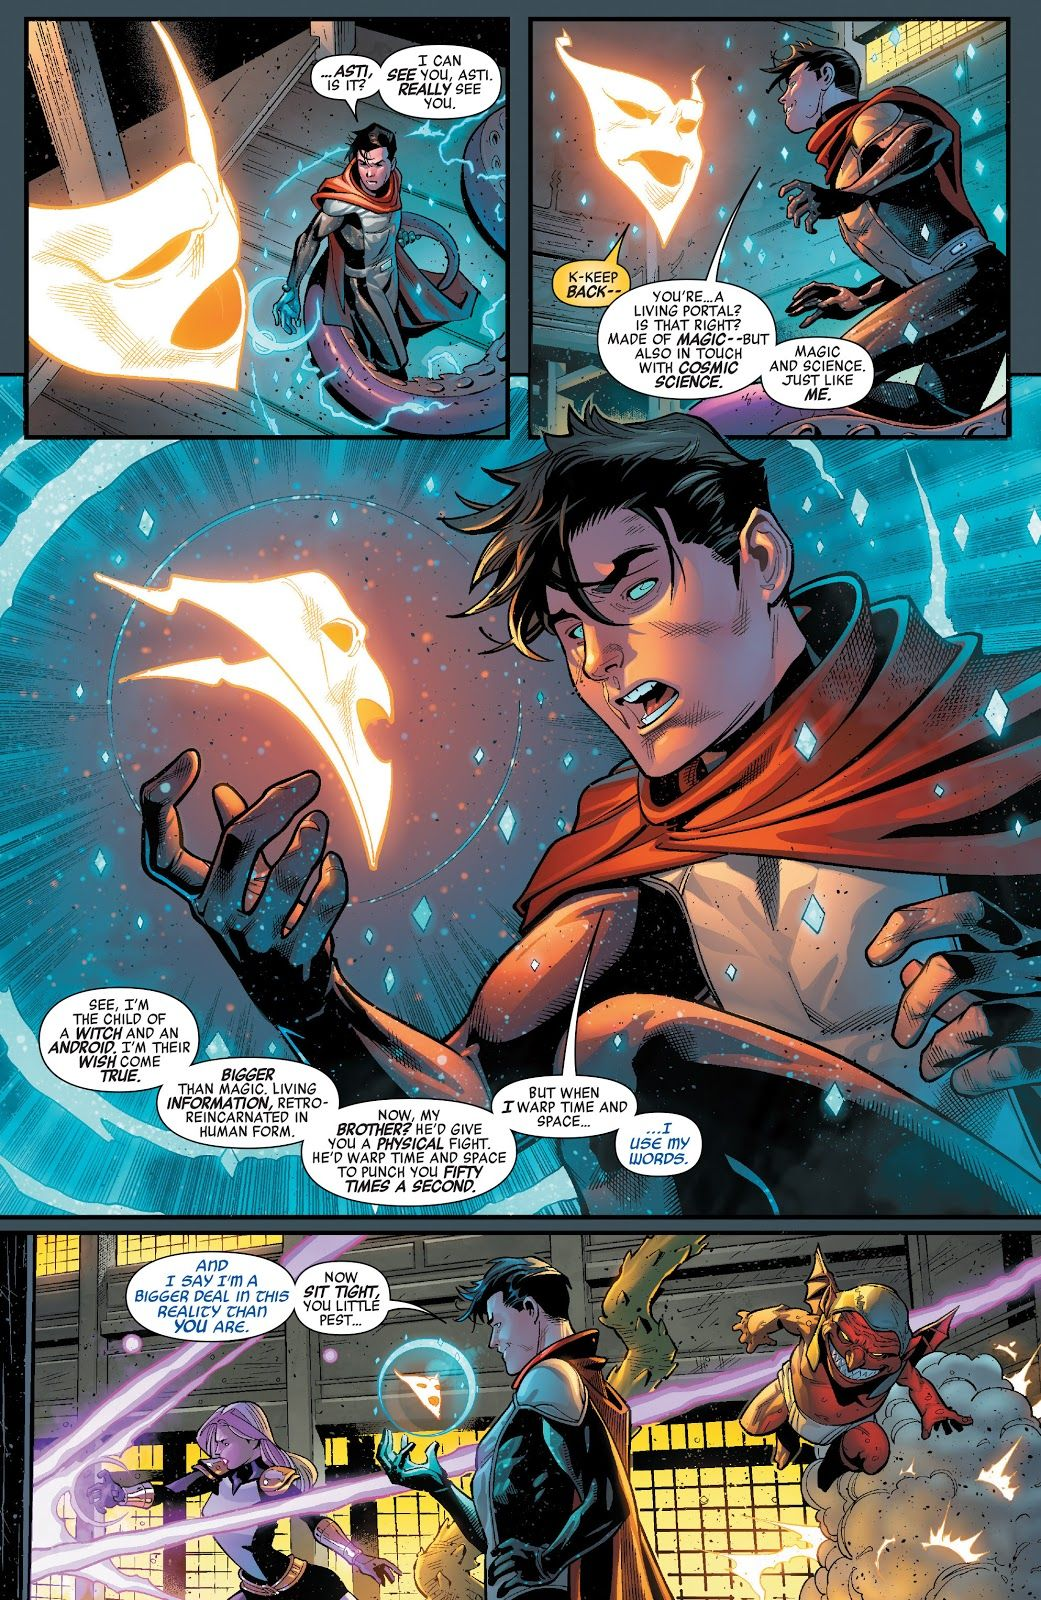 Pin by Joey G on My Bookshelf | Wiccan marvel, Marvel comic